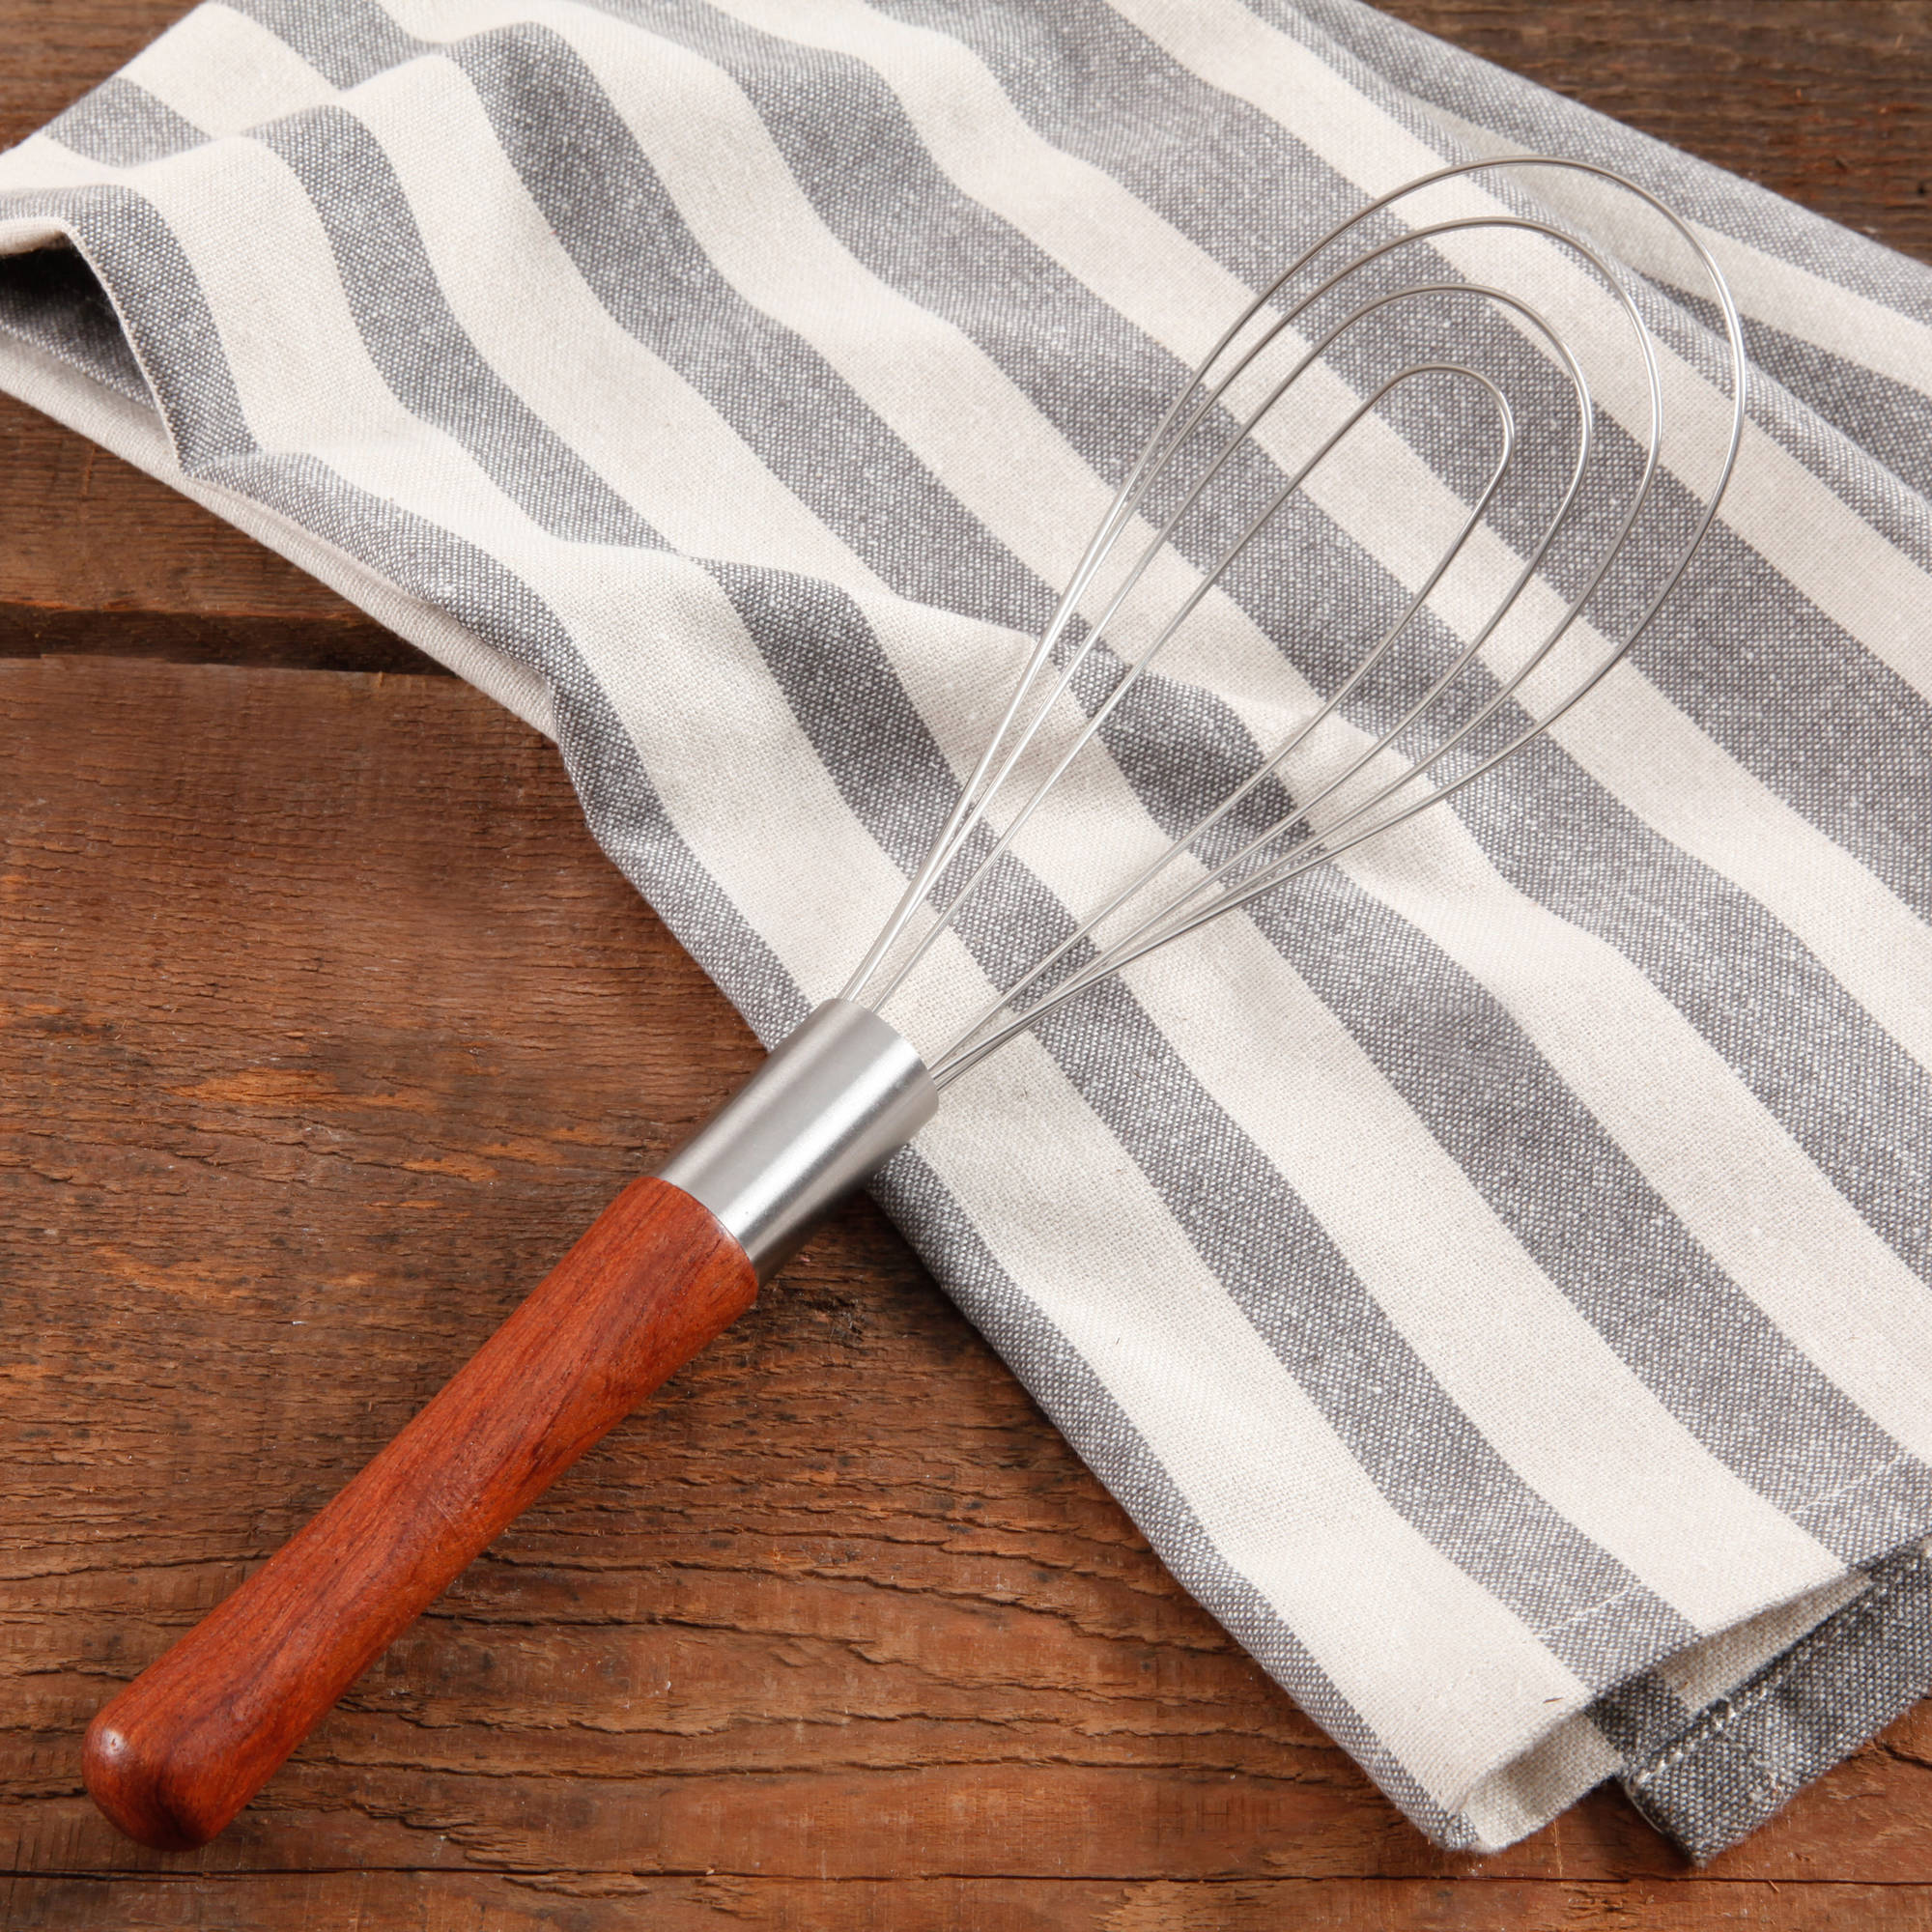 The Pioneer Woman Cowboy Rustic Rosewood Handle Flat Metal Whisk